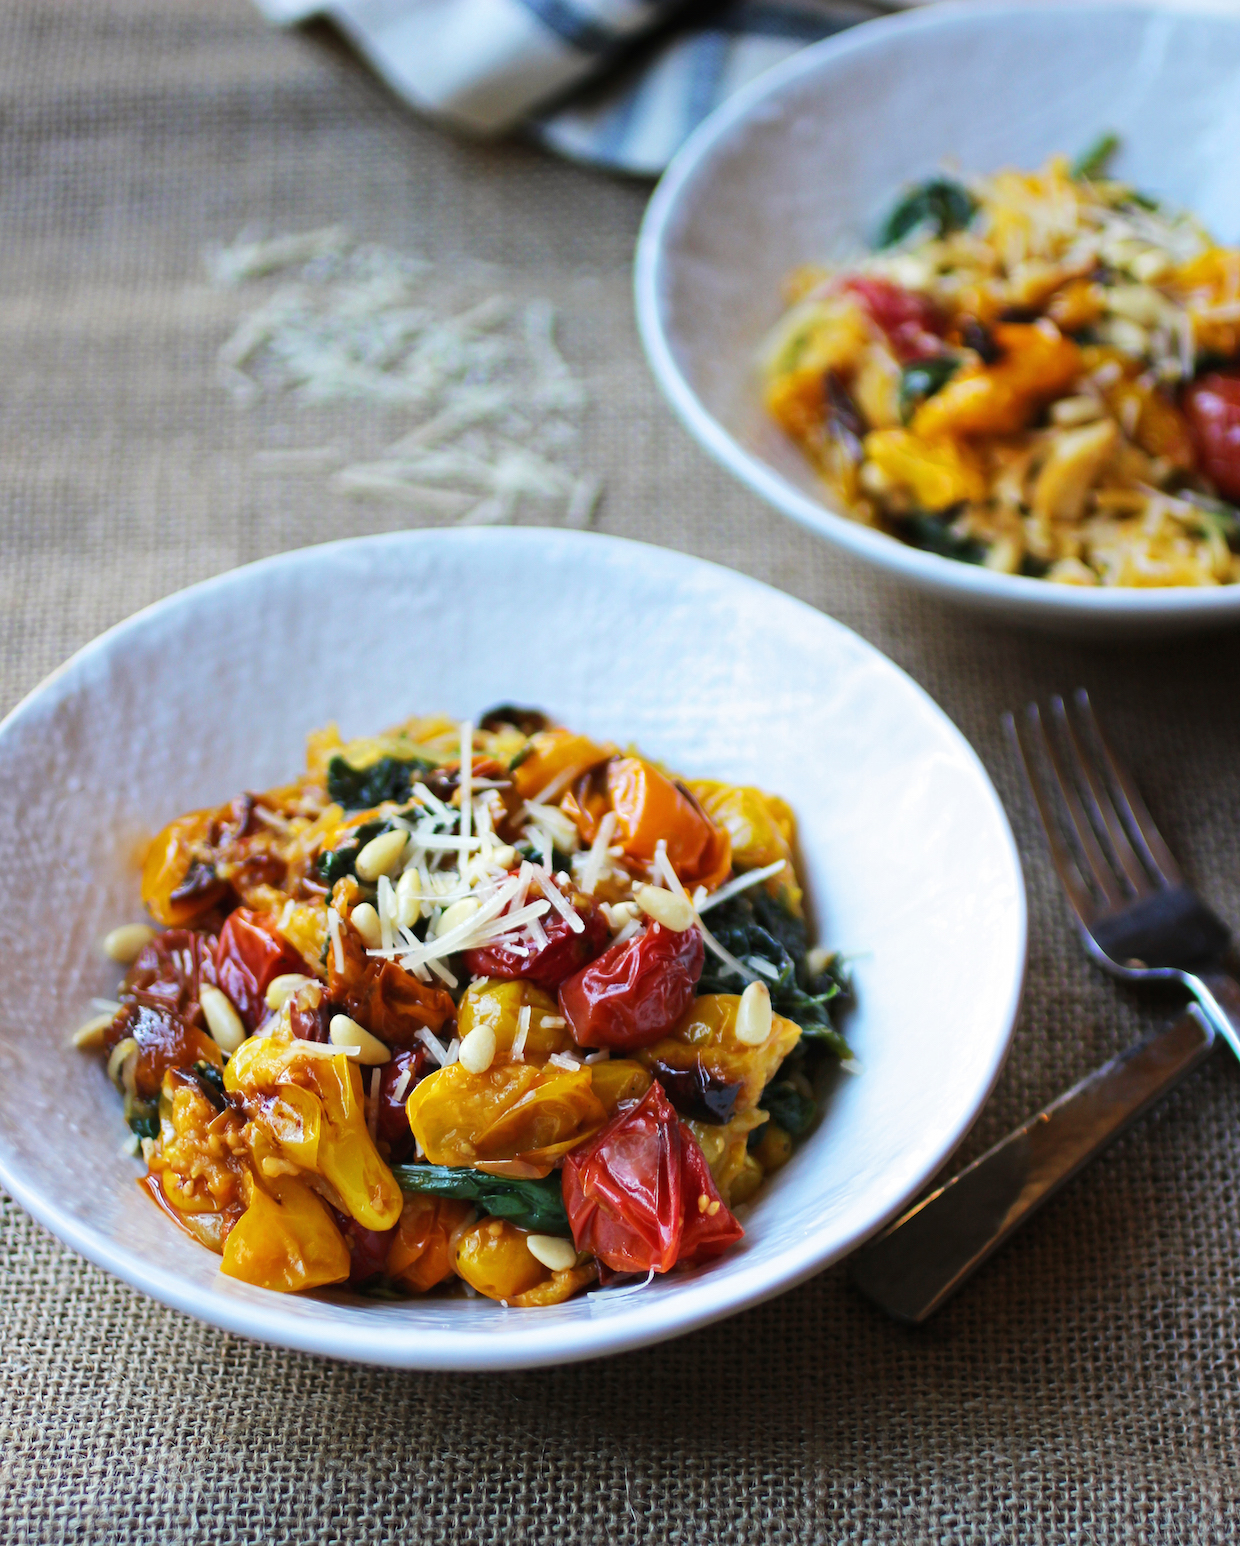 Gluten-Free Vegetarian Recipes For Dinner